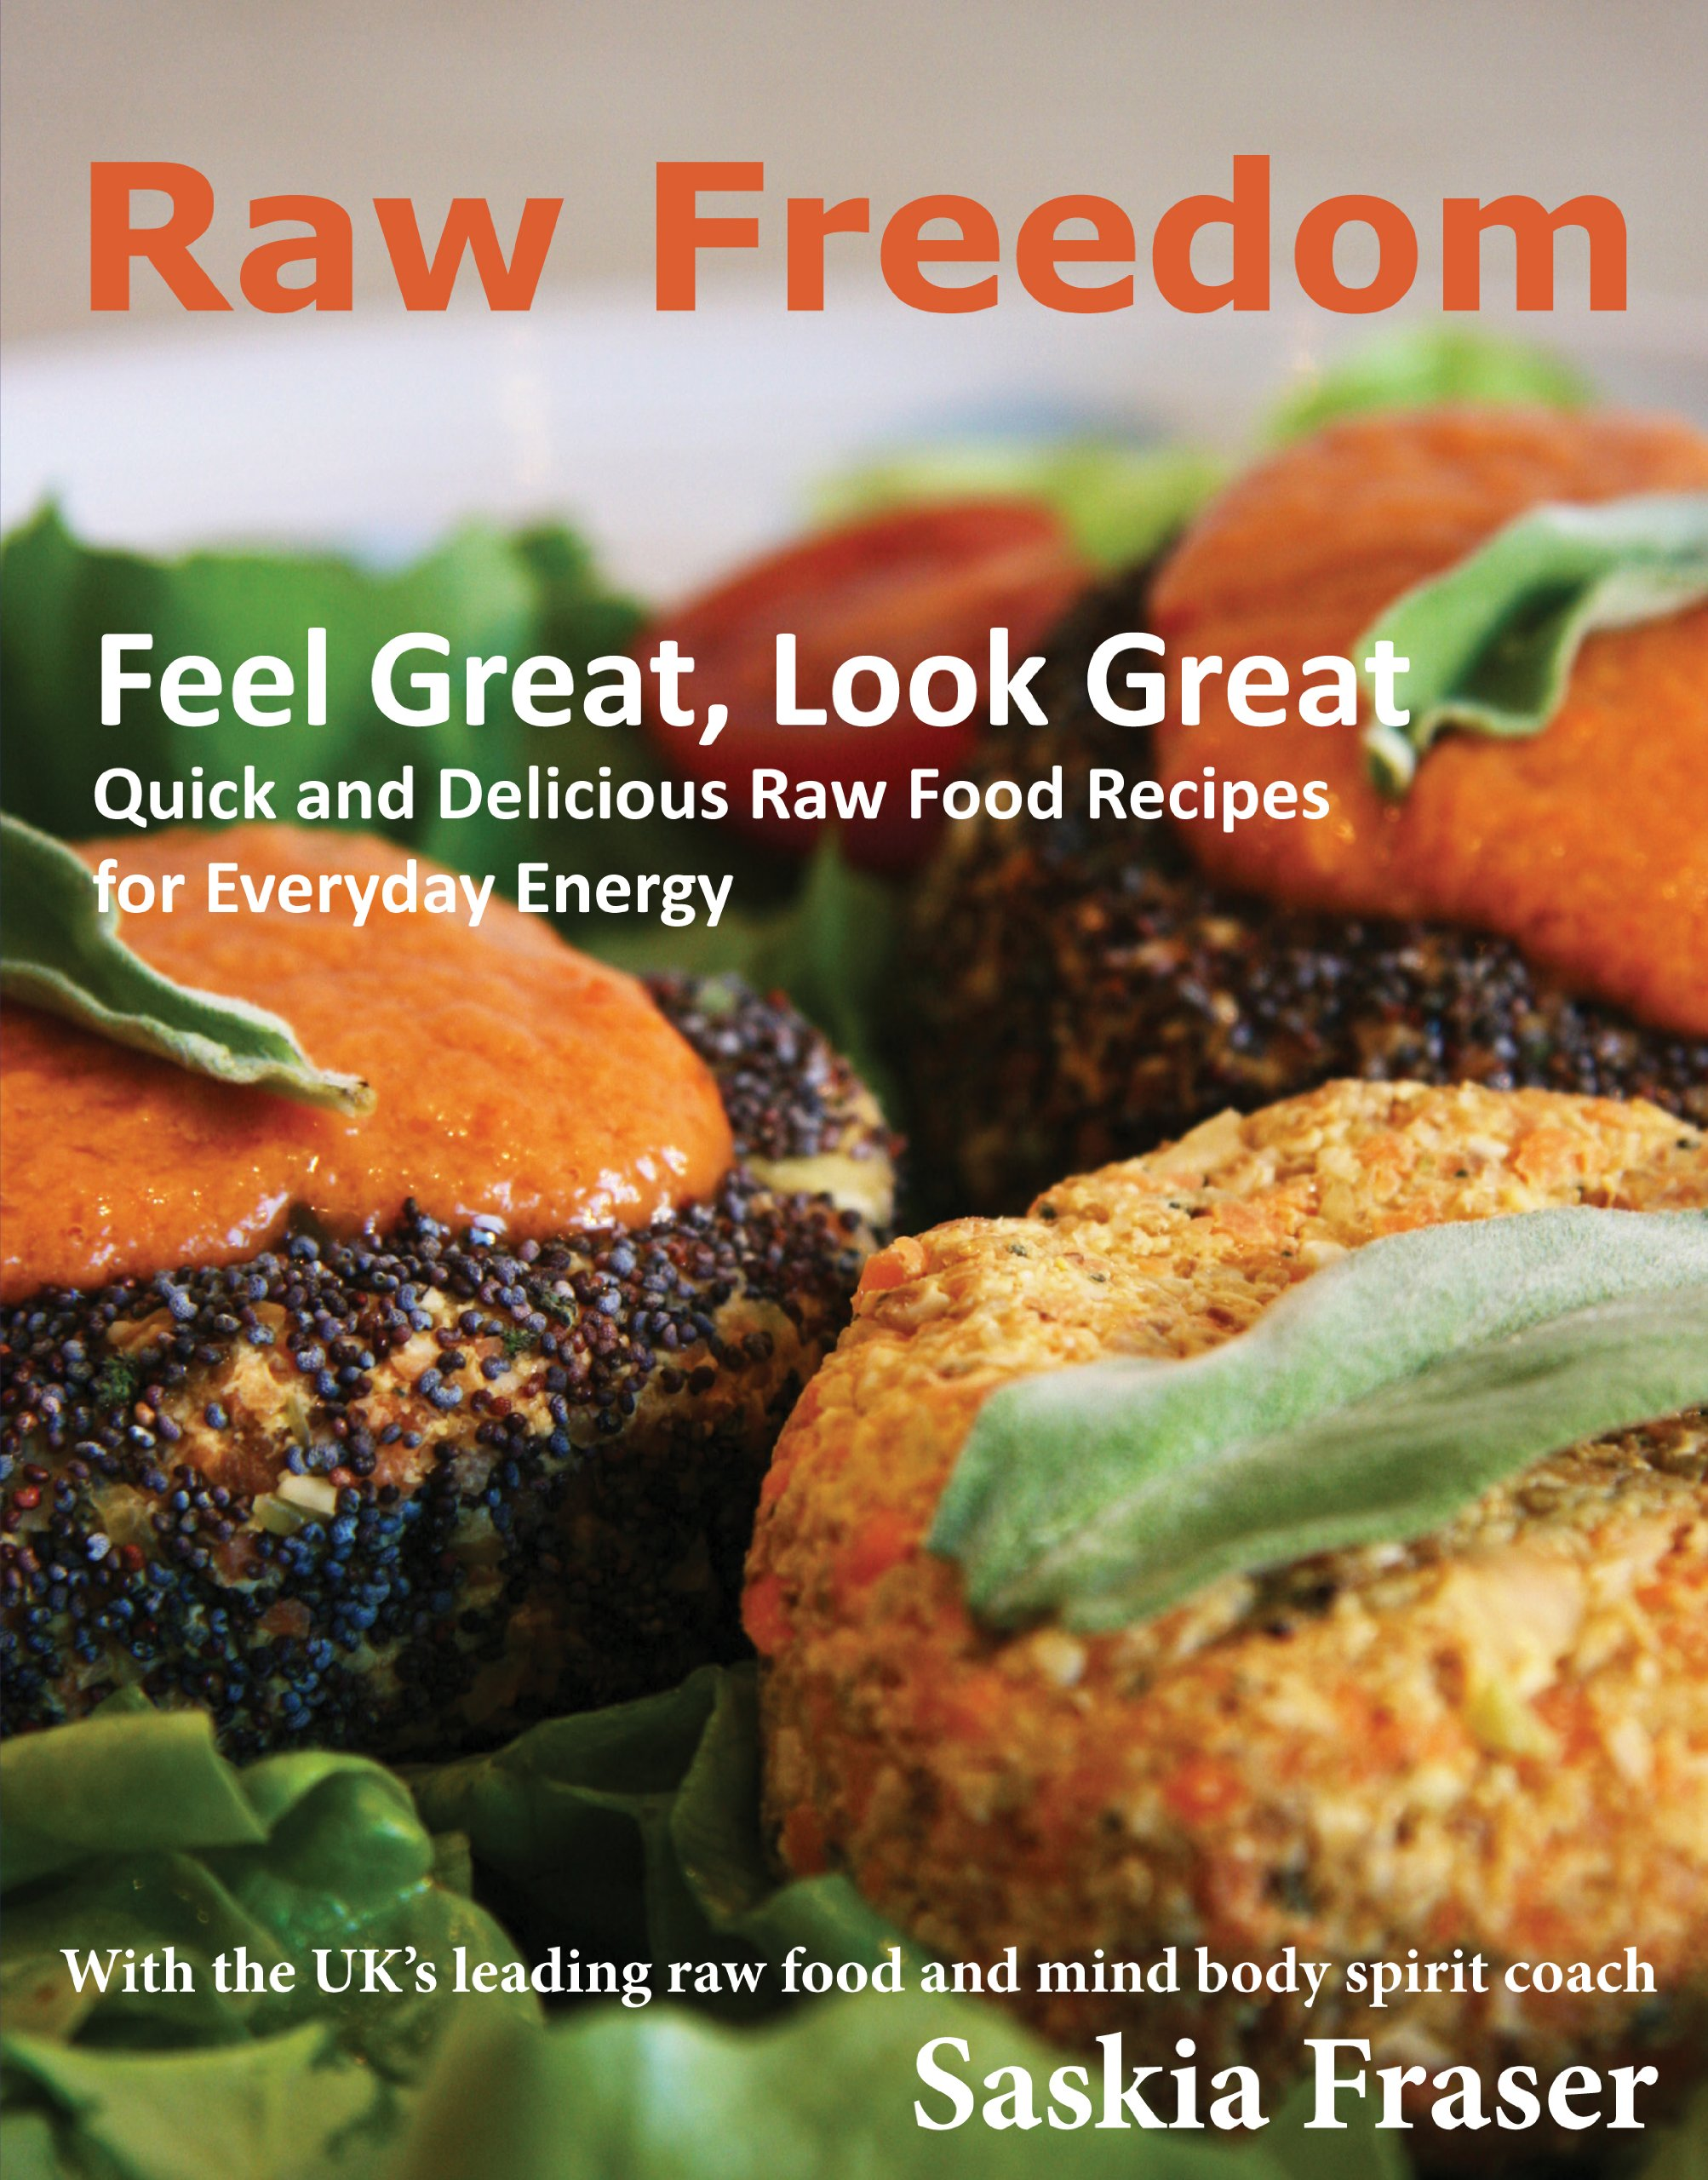 Raw freedom quick and delicious raw food recipes for everyday raw freedom quick and delicious raw food recipes for everyday energy amazon saskia fraser 9781910088005 books forumfinder Images